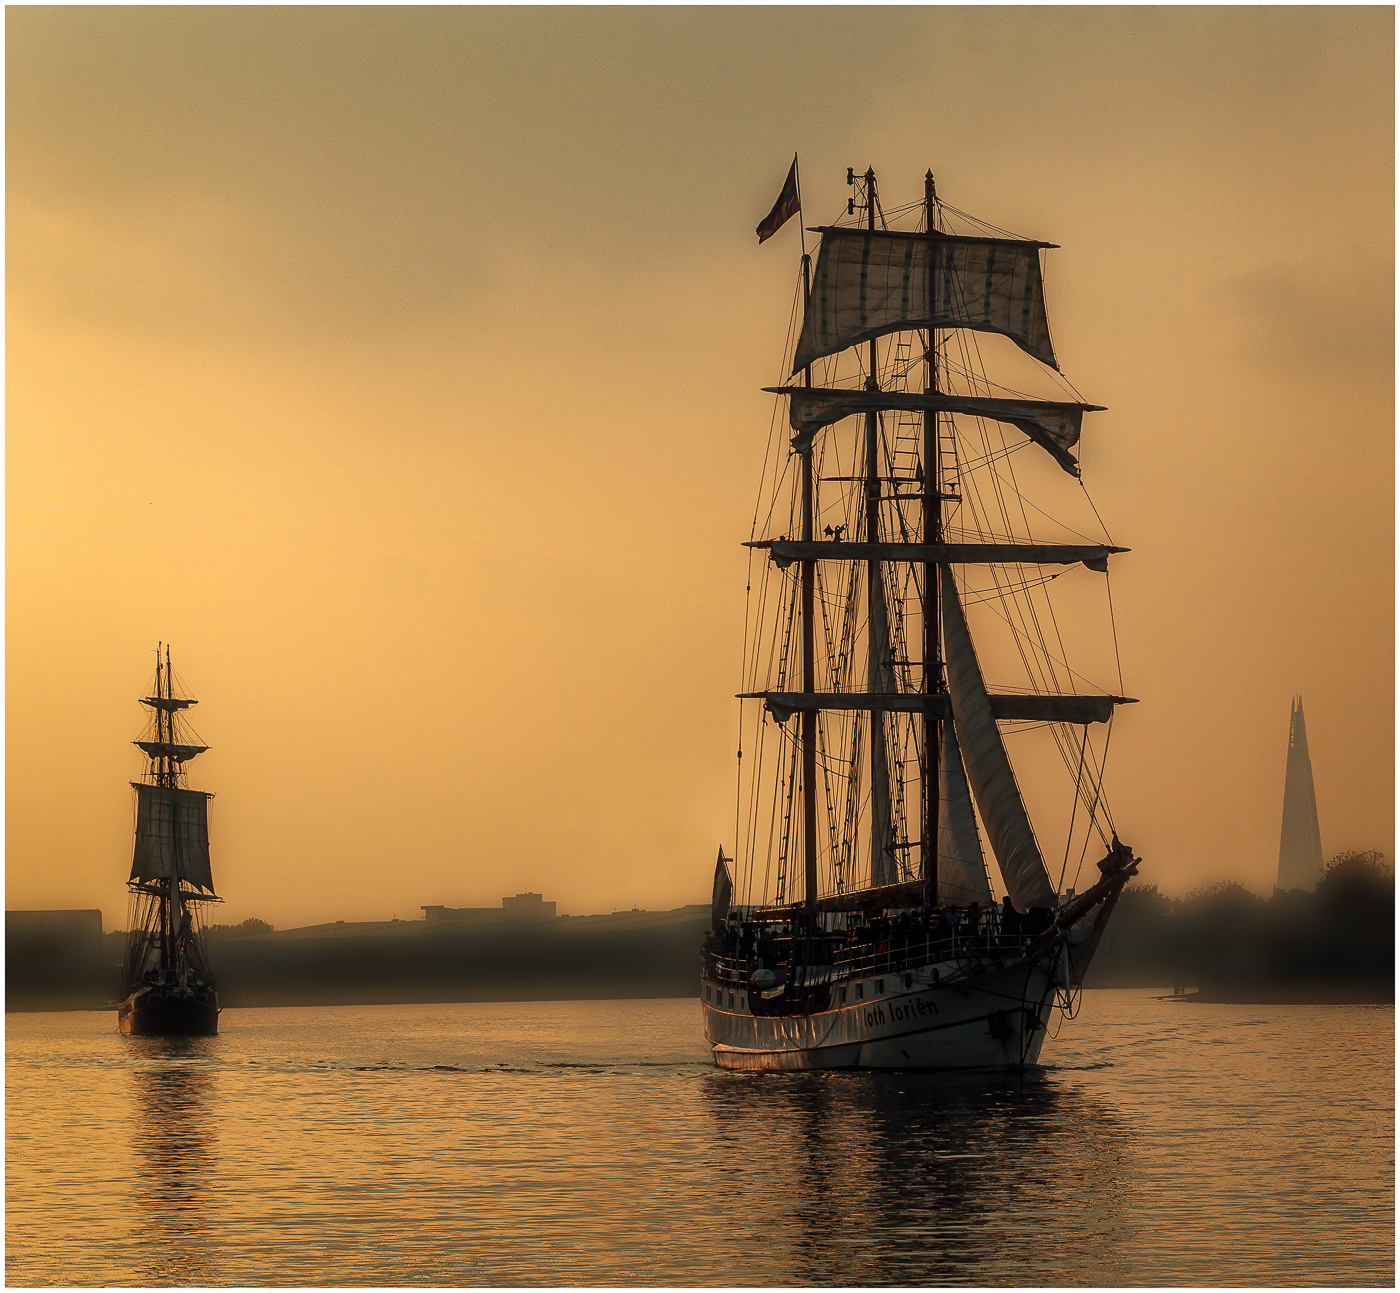 TALL SHIPS by Jack Worsnop